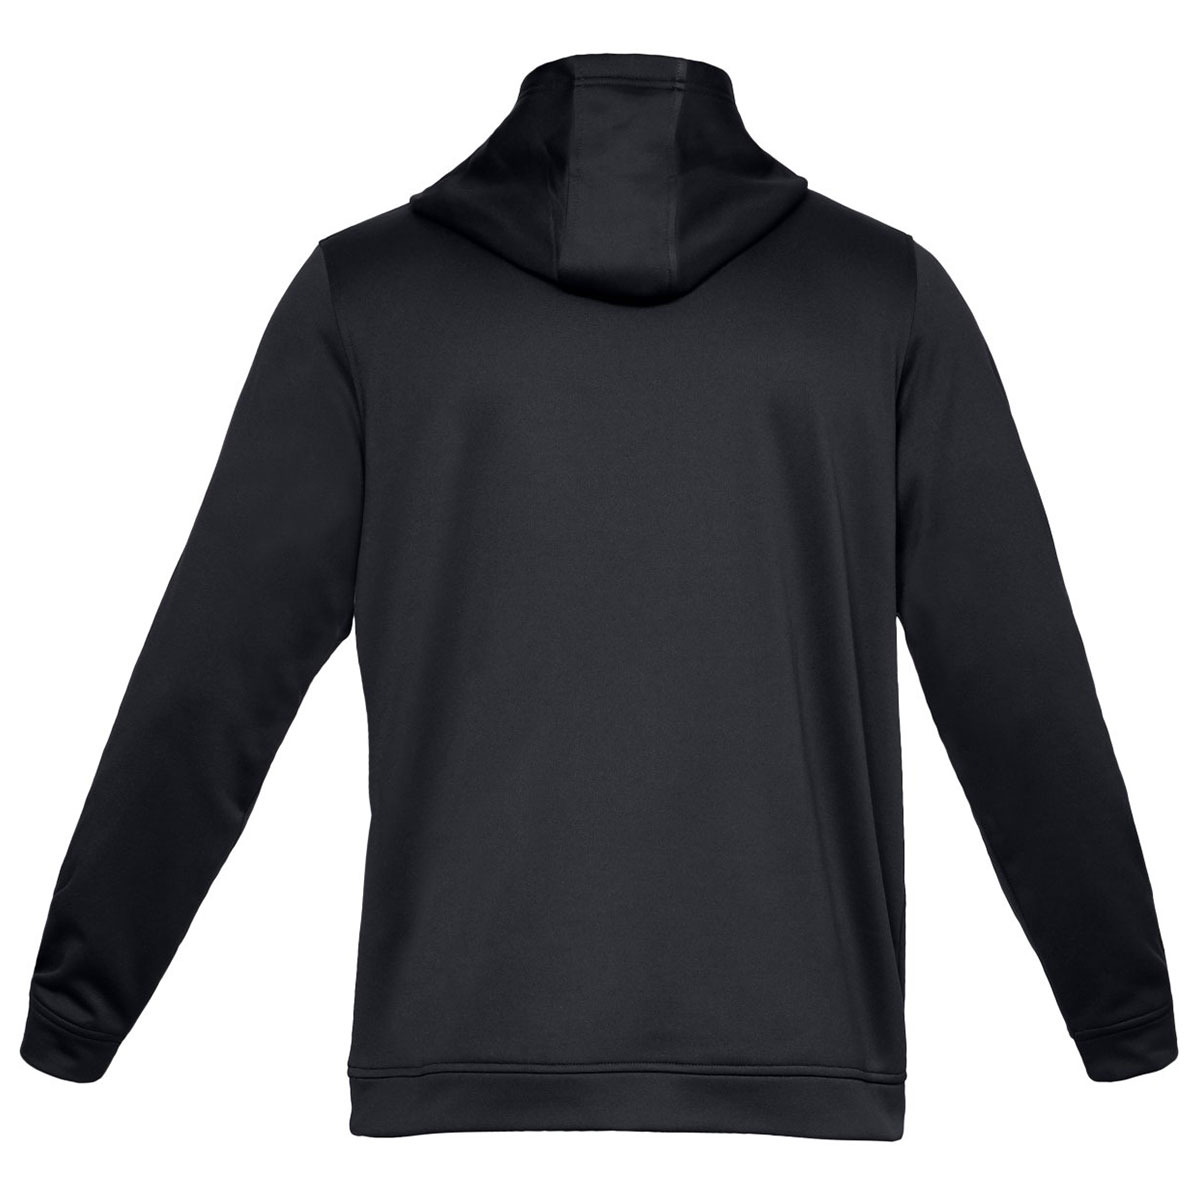 Under-Armour-Mens-Performance-Fleece-Graphic-Hoodie-Hoody-45-OFF-RRP thumbnail 5